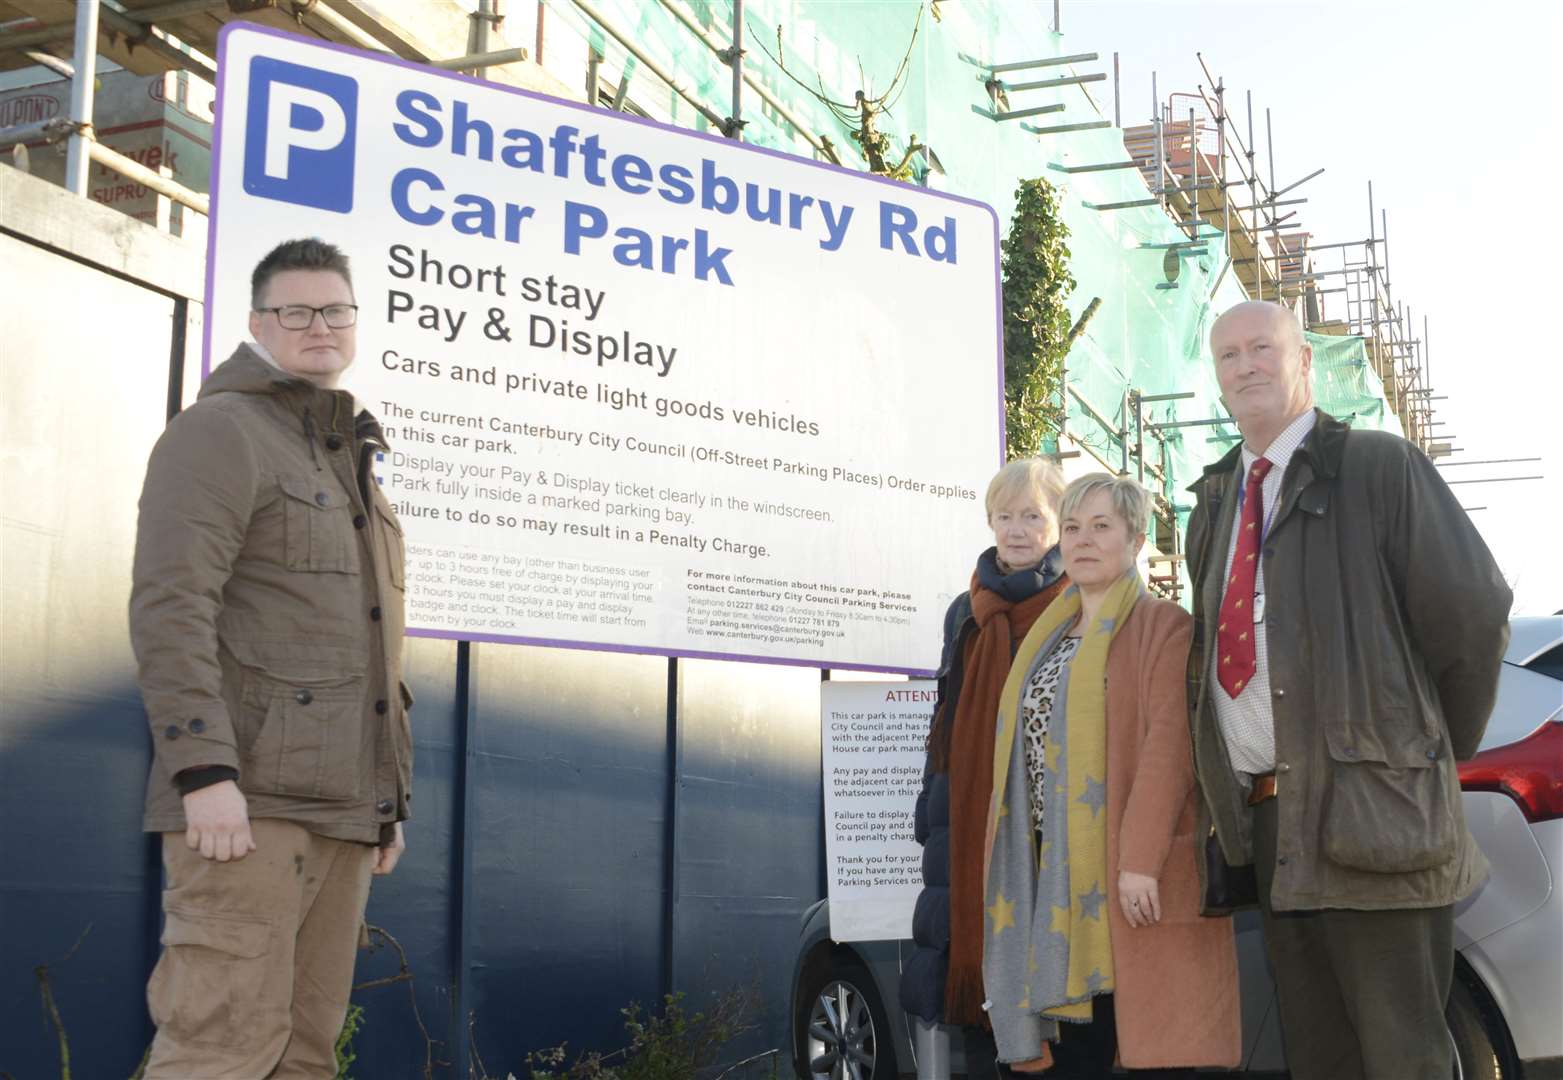 Cllr Chris Cornell,Cllr Ann Kenny, local business owner Alison Clarke and Cllr Ashley Clark were outraged over the proposed charges